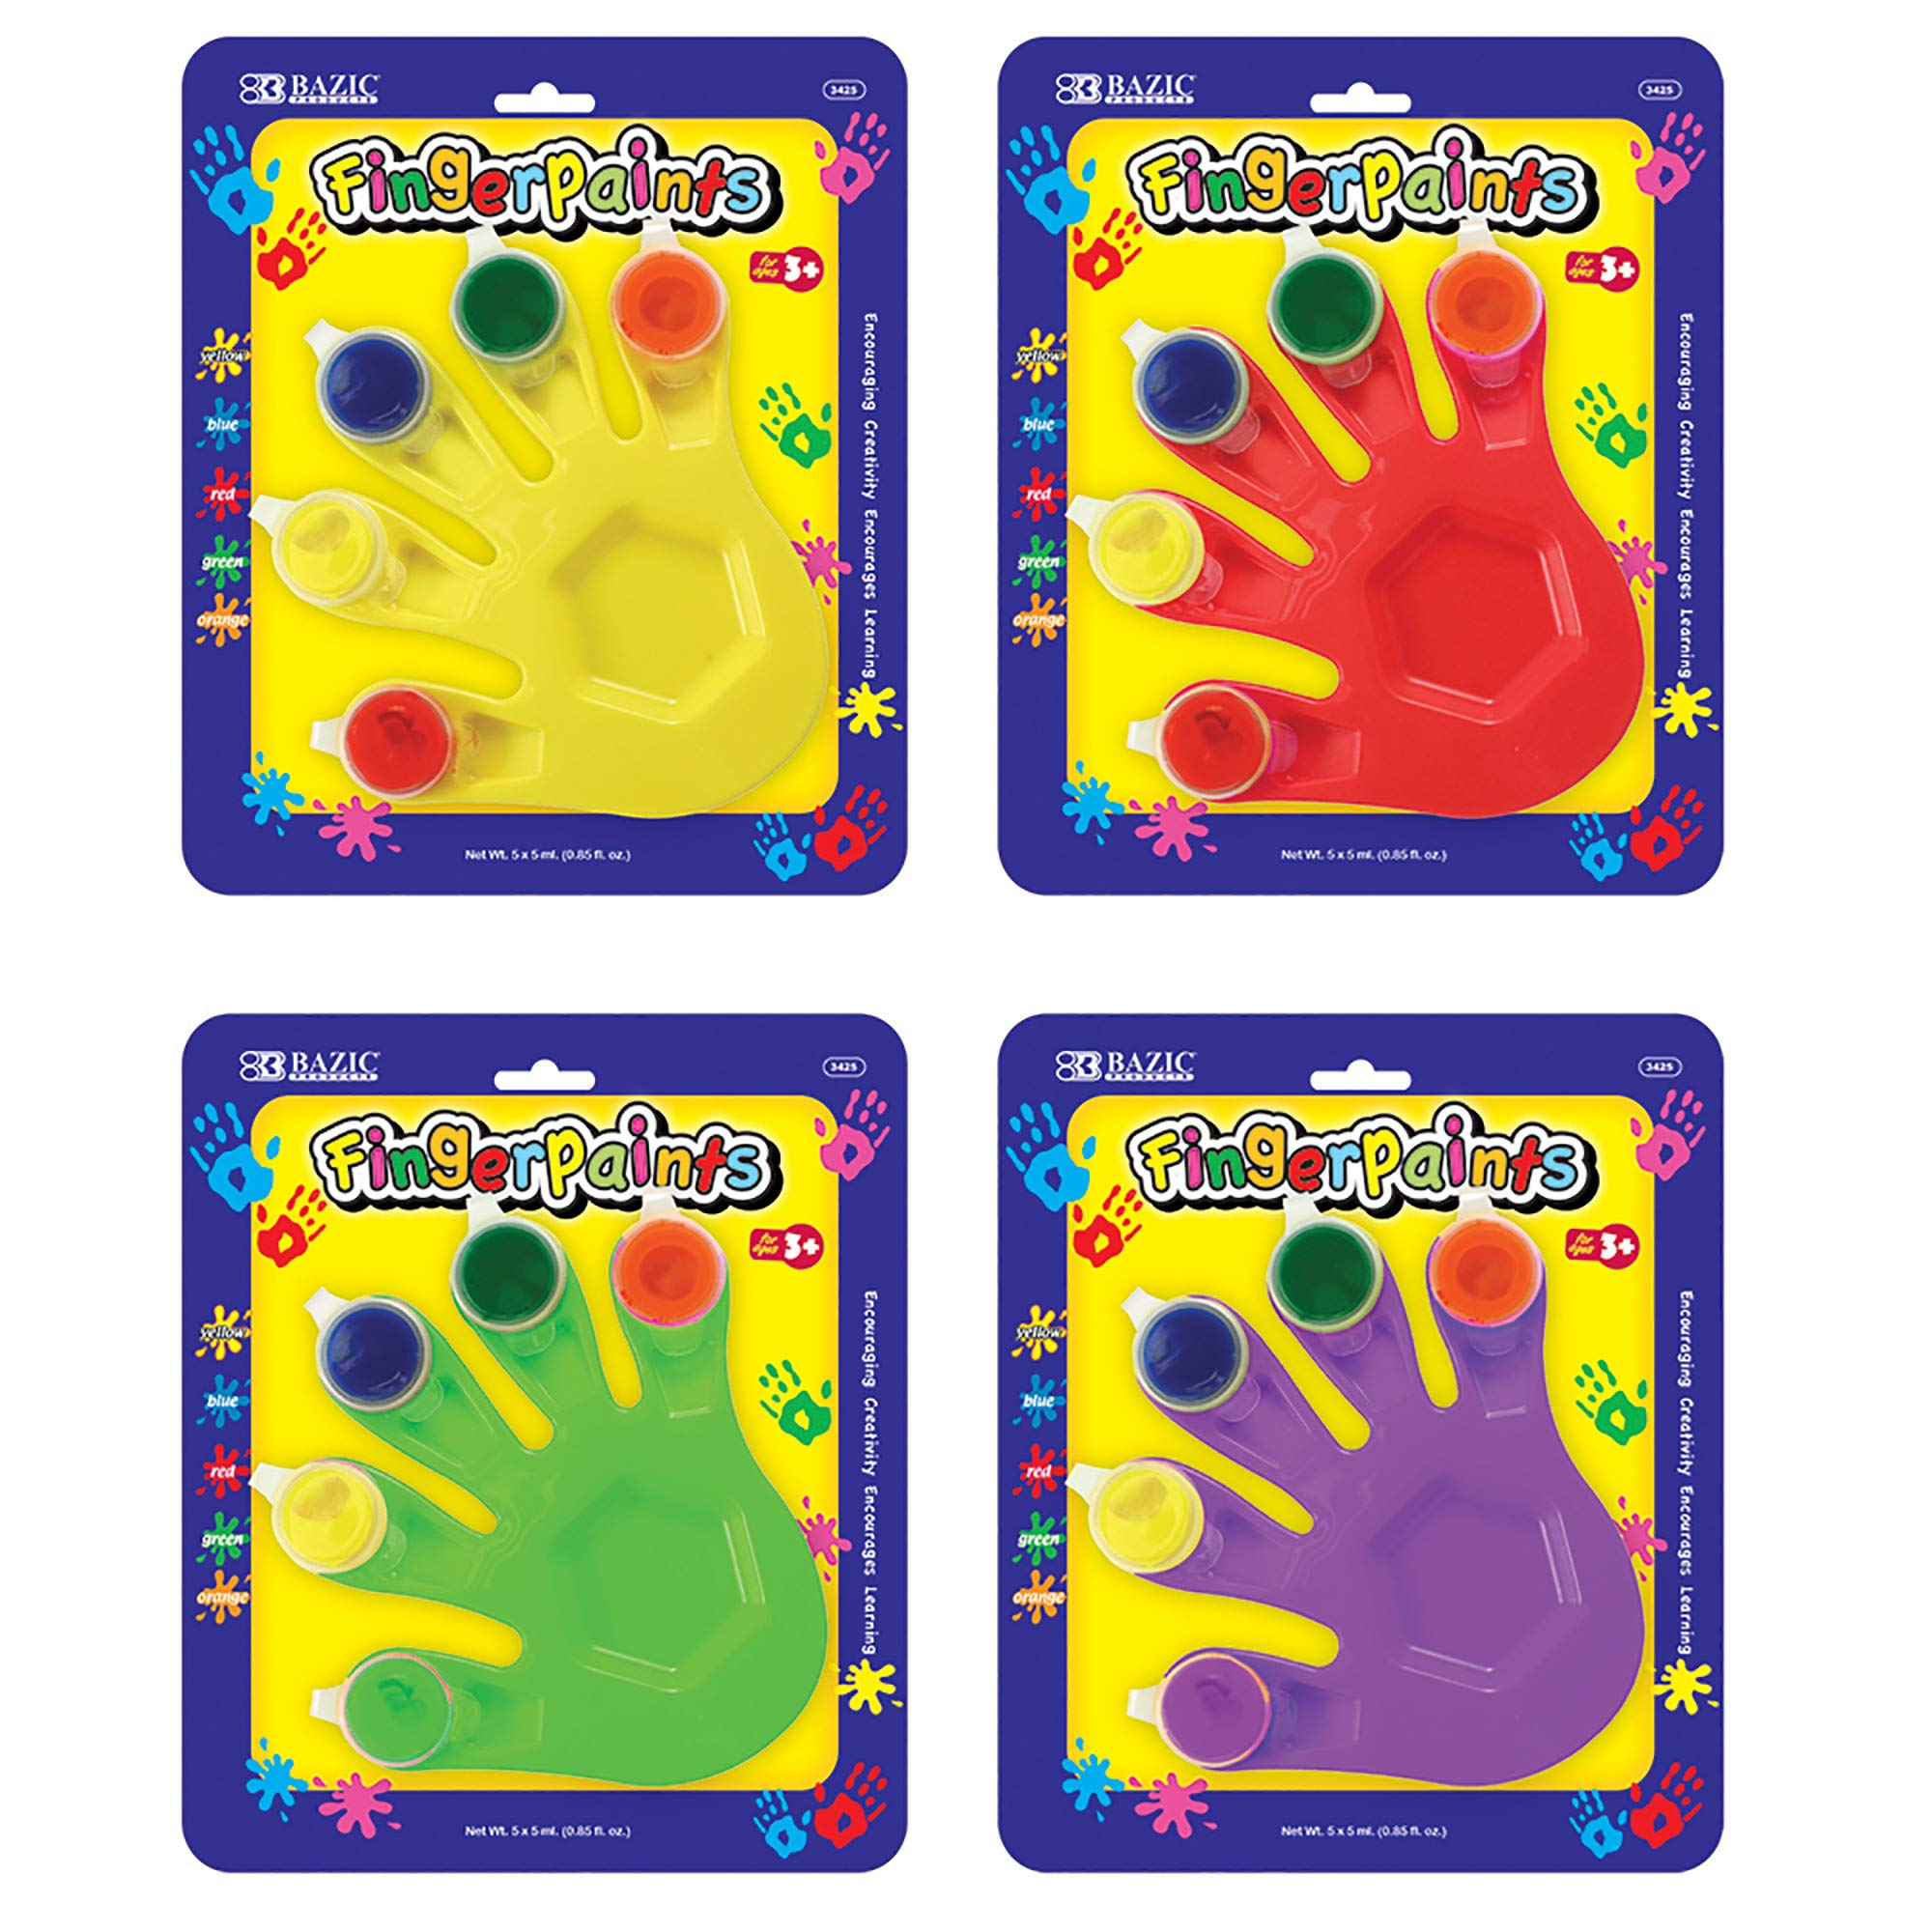 BAZIC 5 Colors 5 ml. Finger Paint w/Hand Shaped Mixing Tray (Case of 24) by B BAZIC PRODUCTS